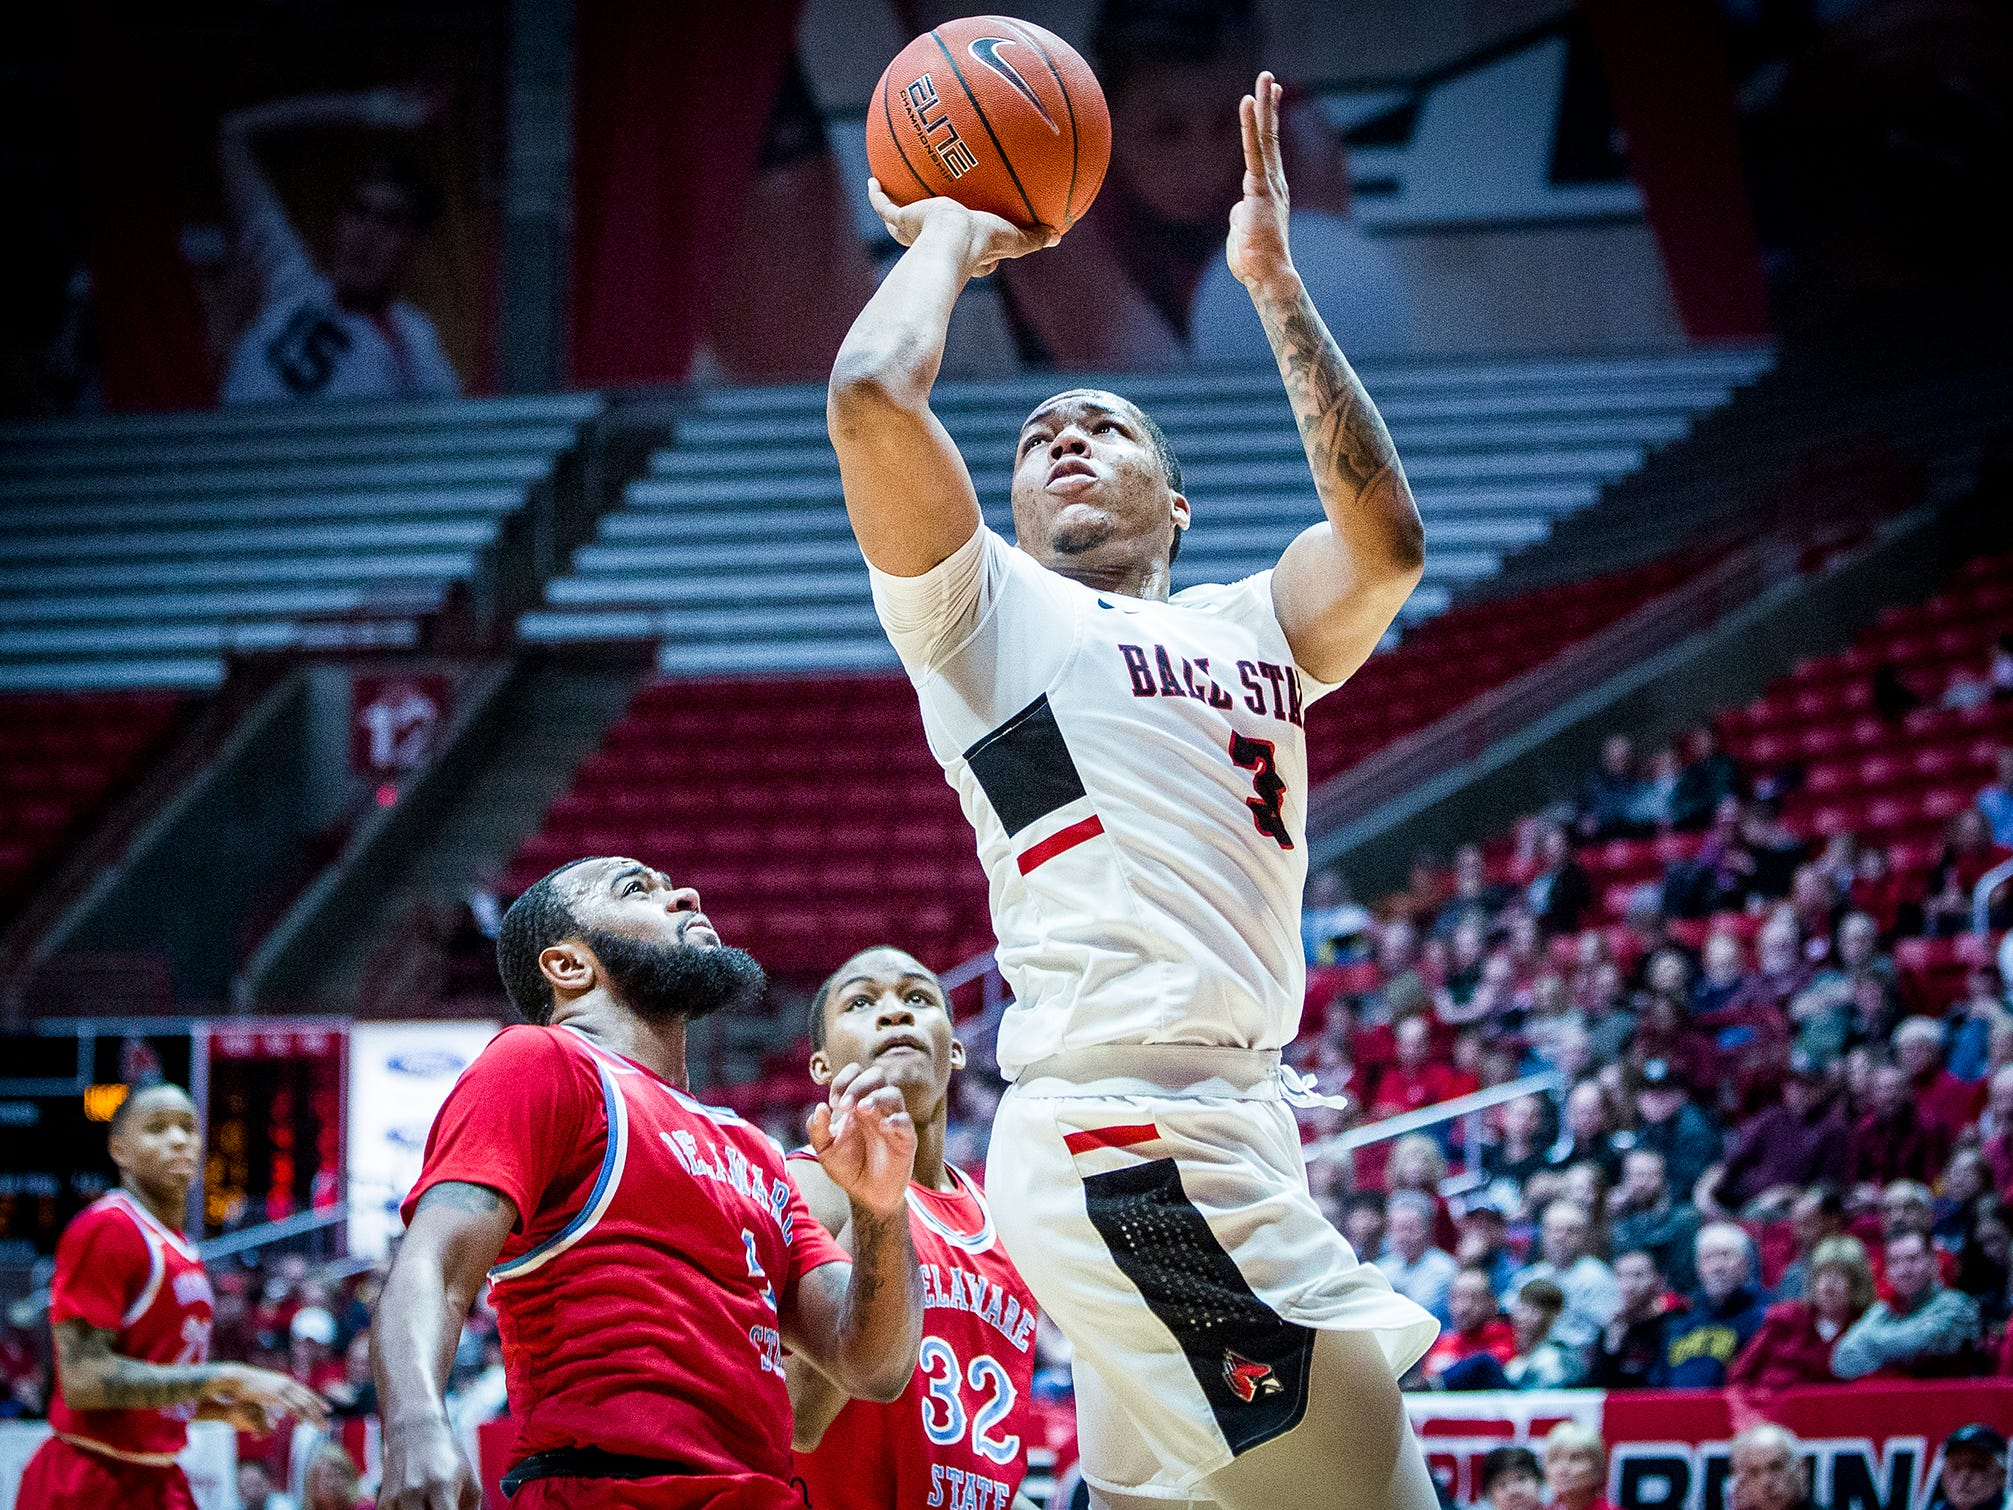 Ball State's Josh Thompson shoots past Delaware State's defense during their game at Worthen Arena Saturday, Dec. 29, 2018.